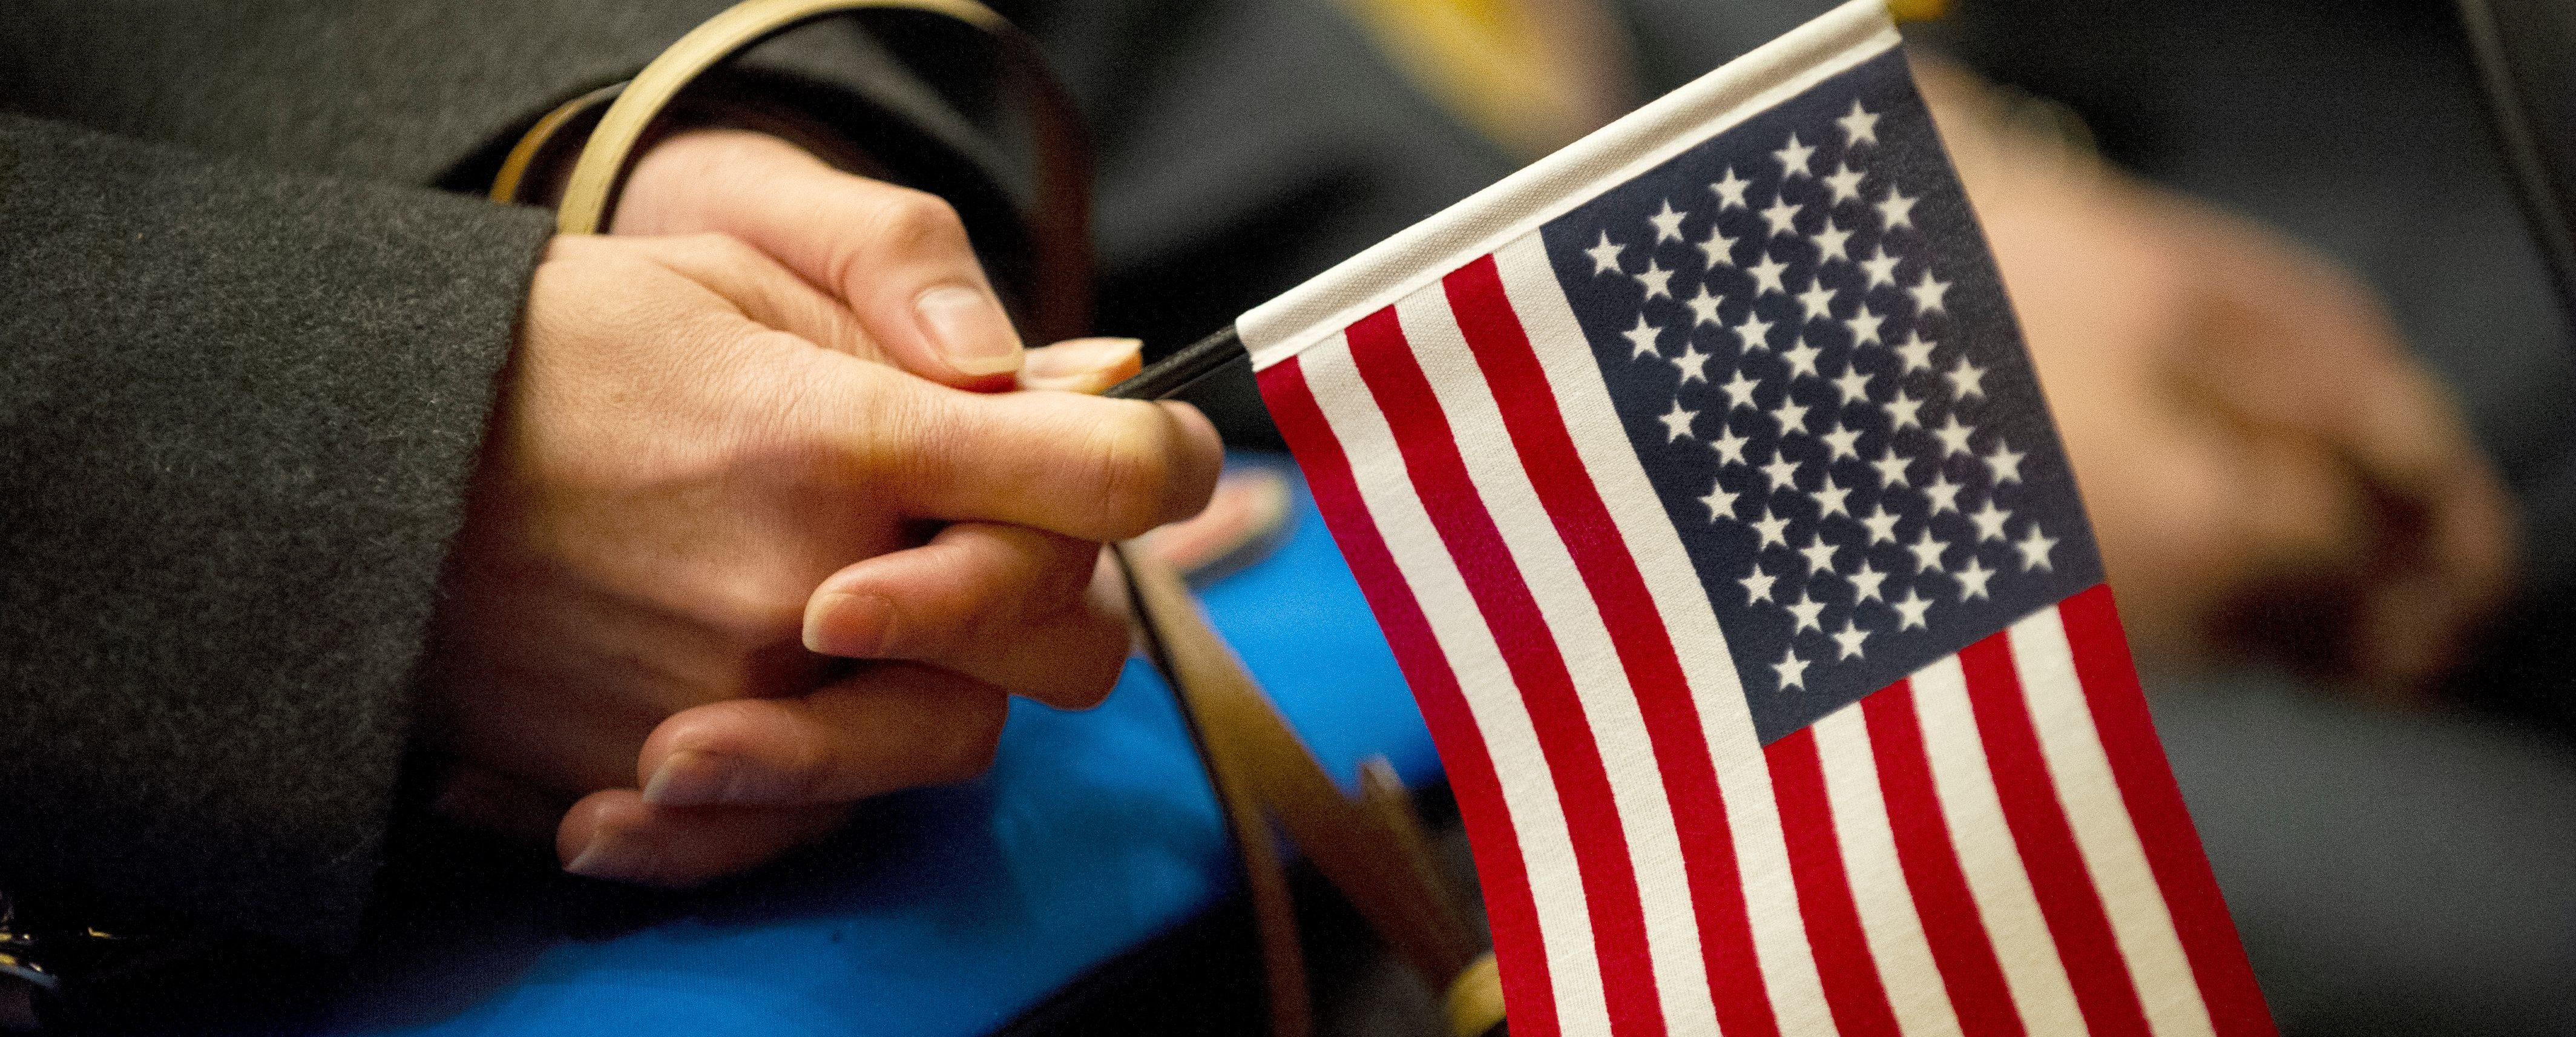 A woman holds a US Flag during a naturalization ceremony at the Lowell Auditorium where 633 immigrants became US citizens on January 22, 2019 in Lowell, Massachusetts. (Photo by Joseph PREZIOSO / AFP) (Photo credit should read JOSEPH PREZIOSO/AFP/Getty Images)